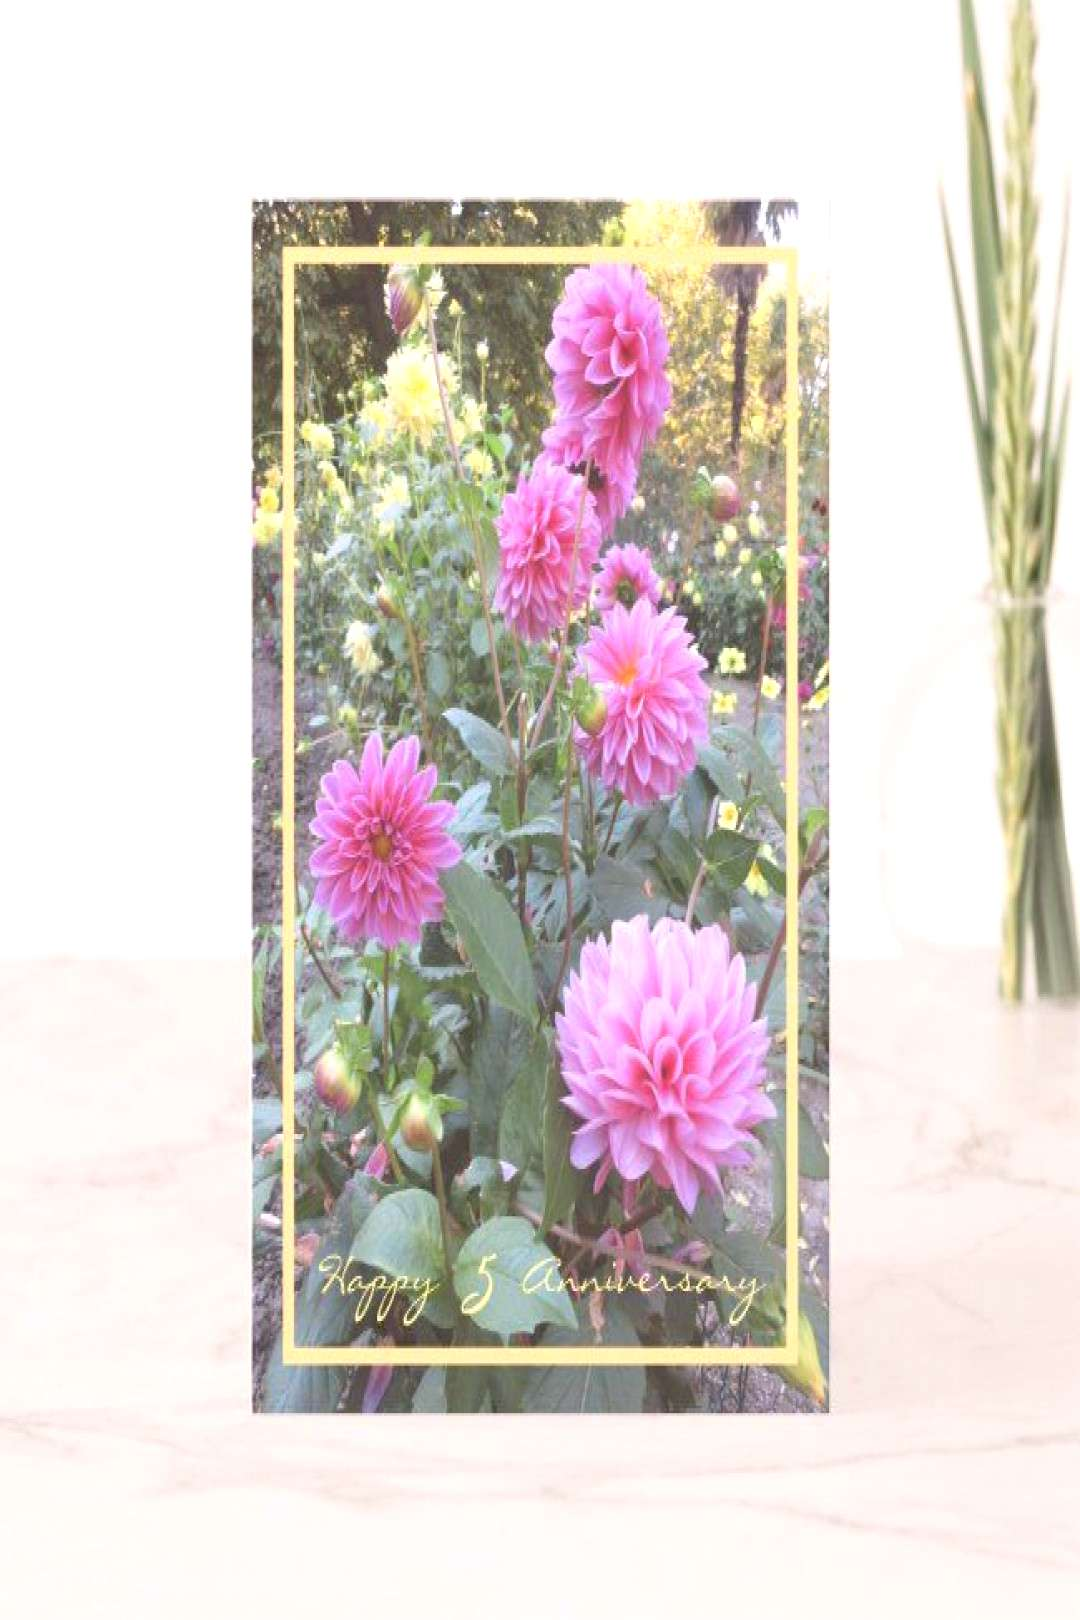 Fifth Wedding Anniversary Wishes 5 Chrysanthemums Card ,